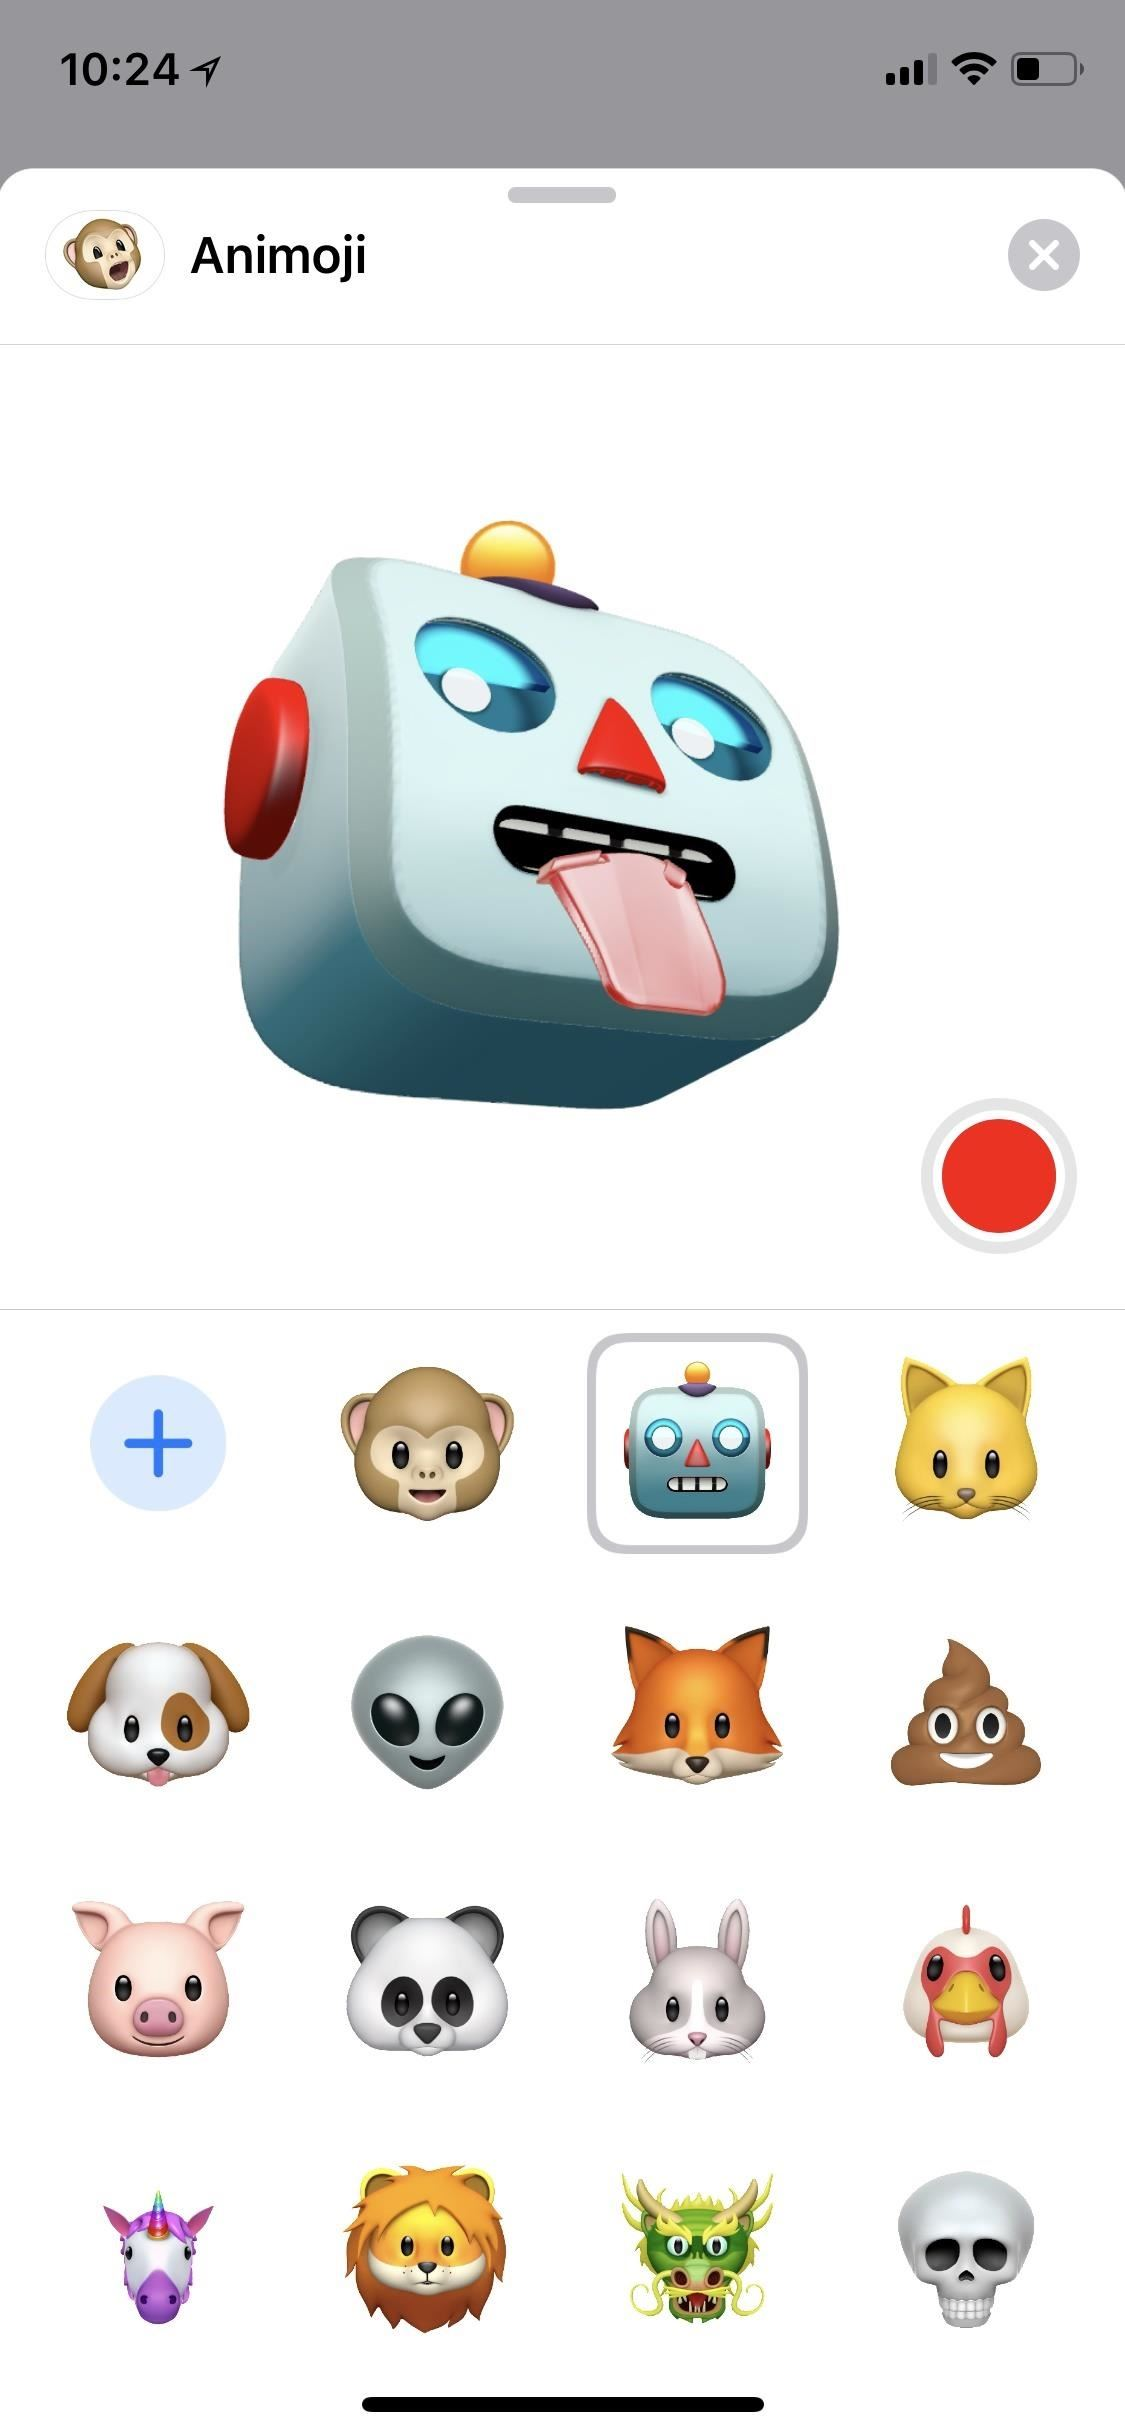 46 Cool New iOS 12 Features You Didn't Know About